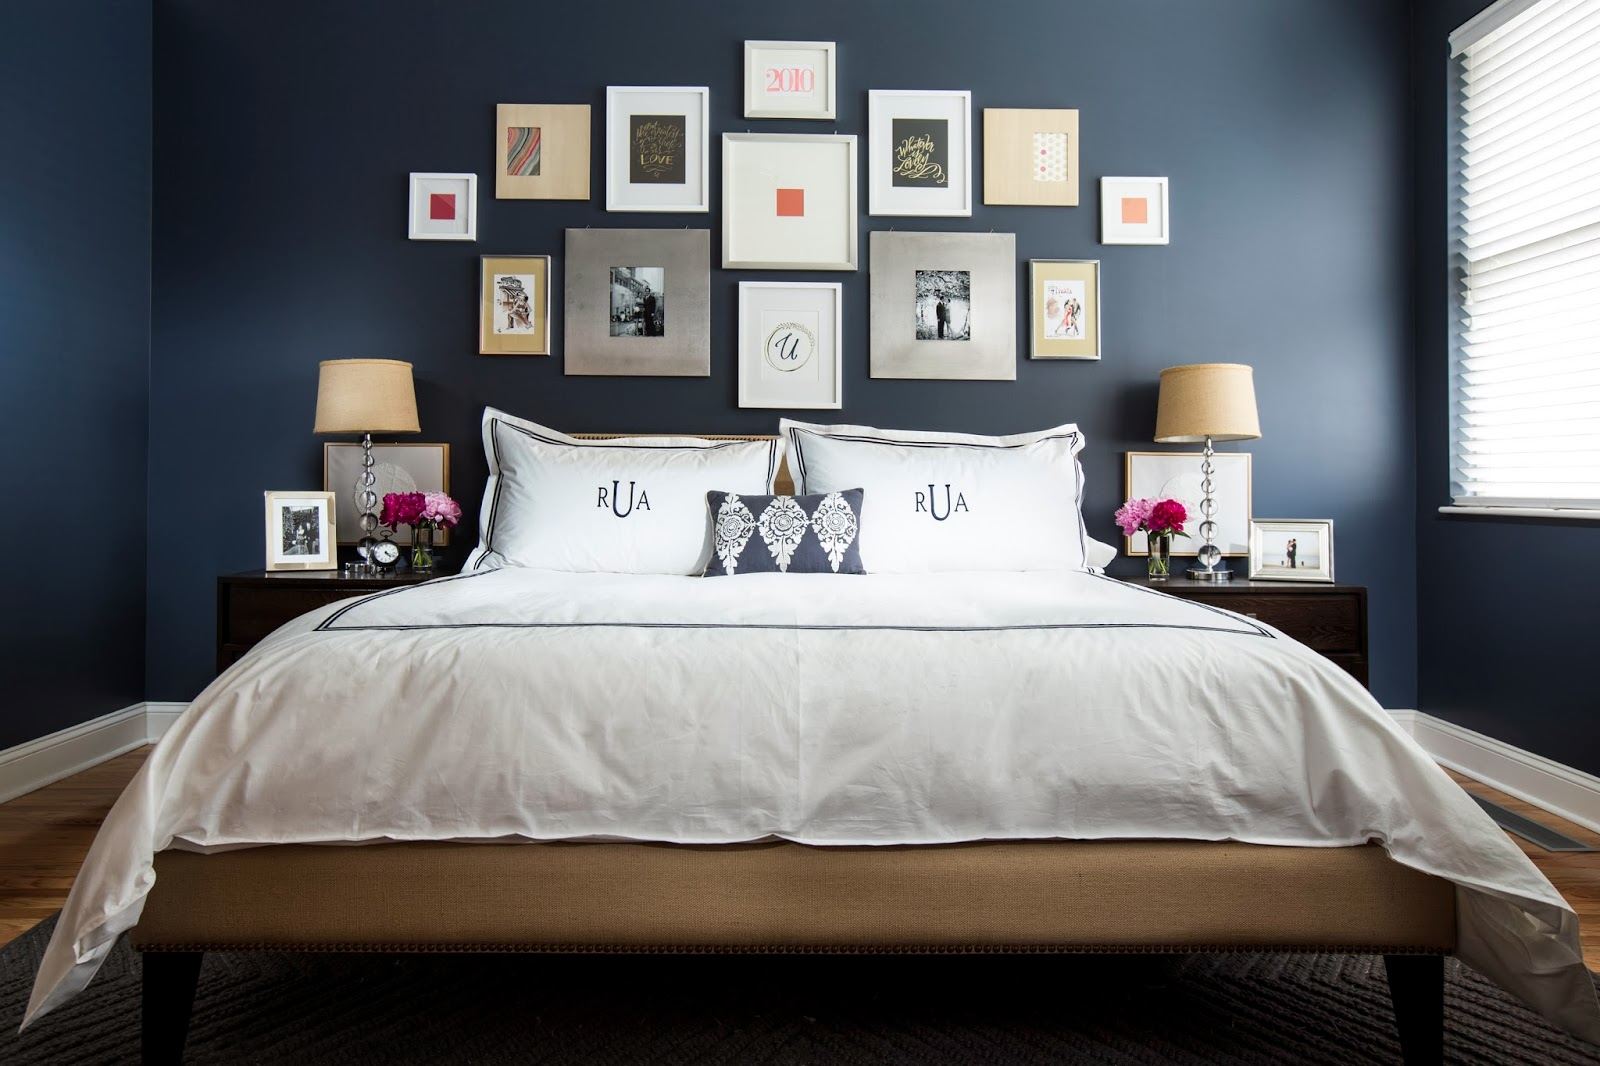 Bedroom Decorating Ideas Navy Blue | Bedroom Decorating